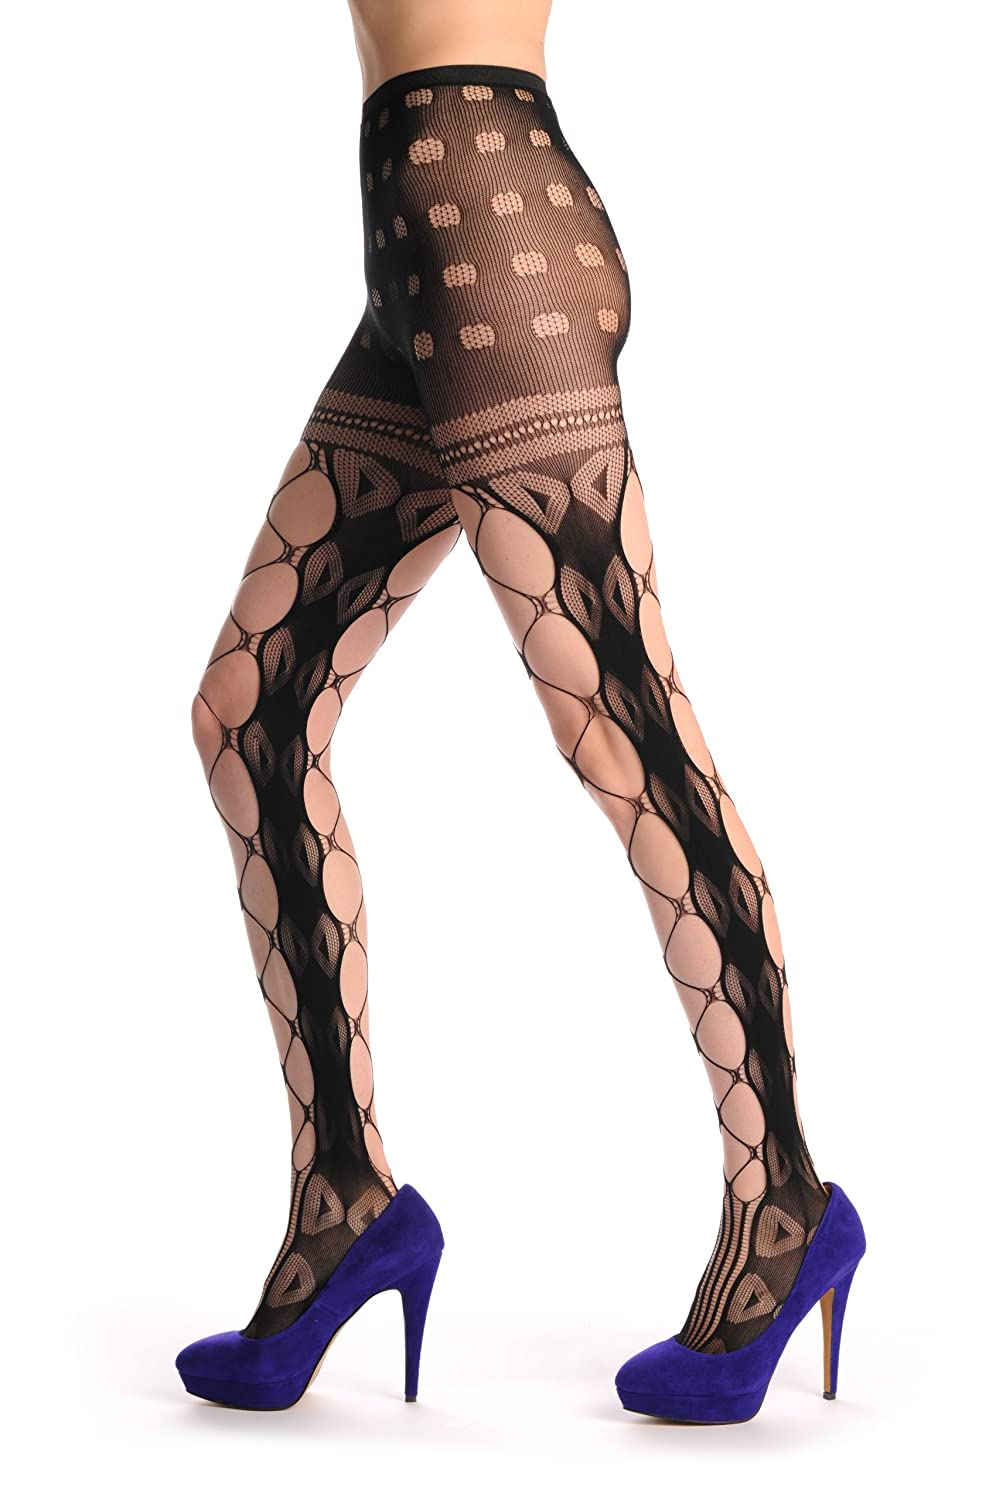 c467648b0c0a1 Mesh With Side Seam & Lace Top Fishnet - Tights at Amazon Women's Clothing  store: